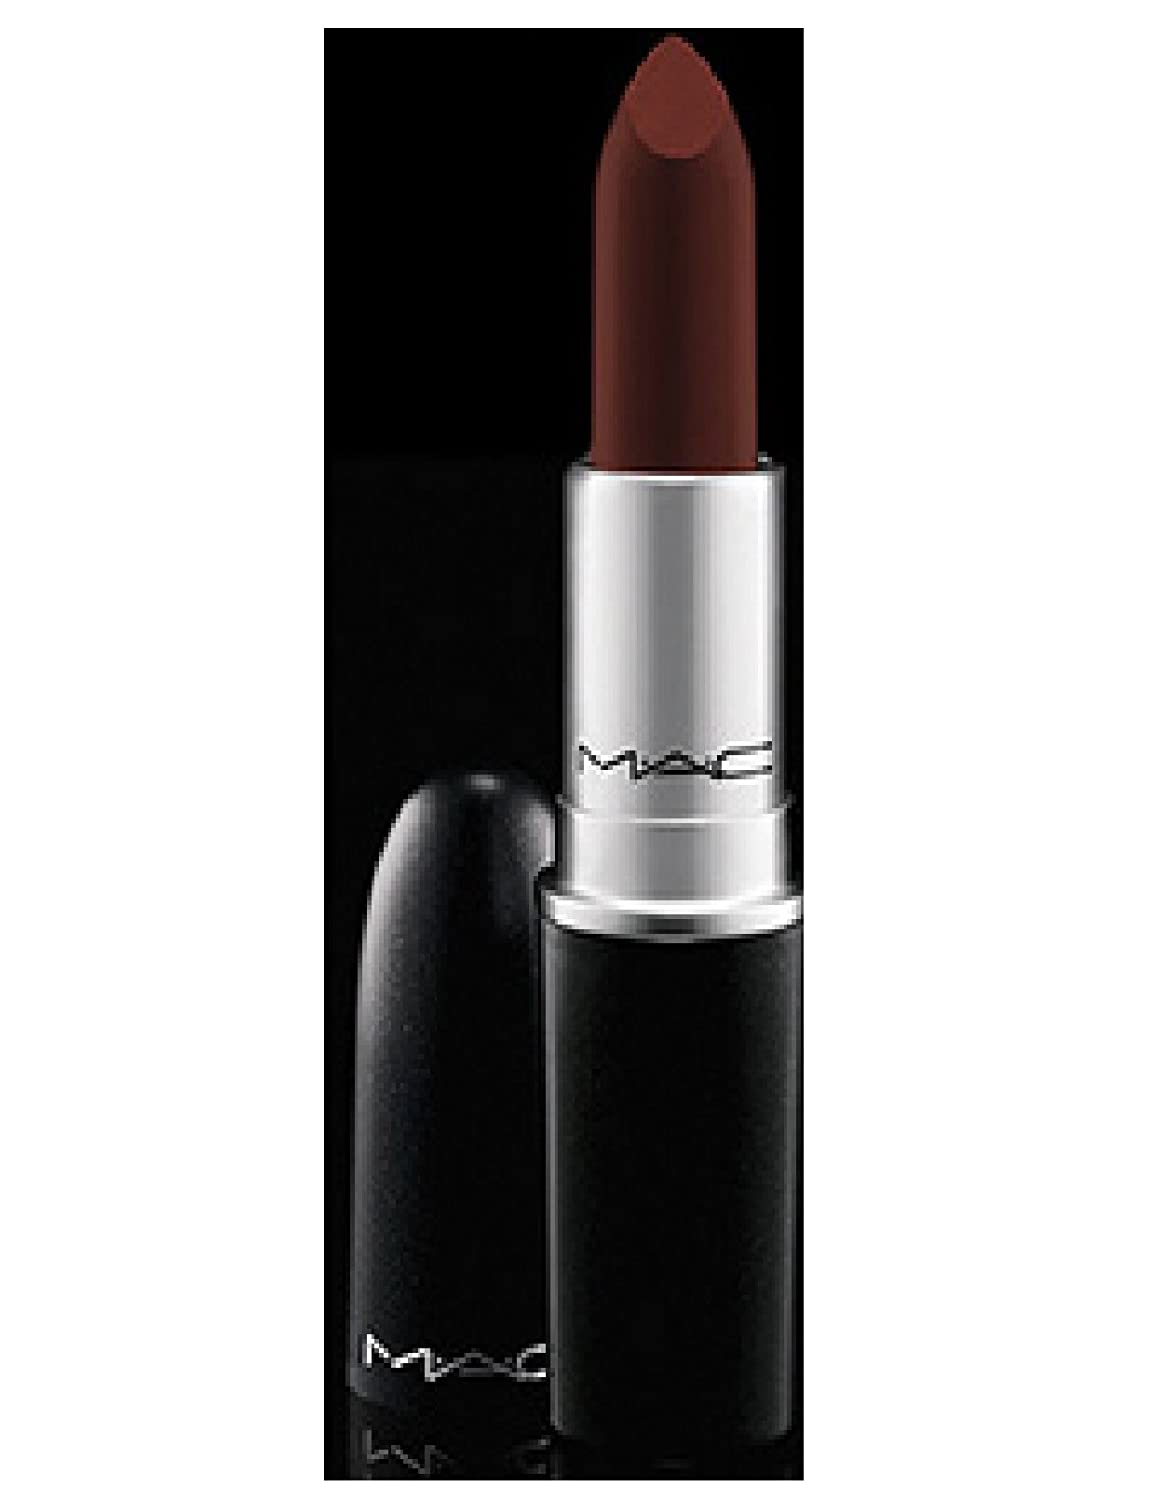 Famoso Amazon.com : Mac Matte Lipstick, Antique Velvet : Beauty LN69